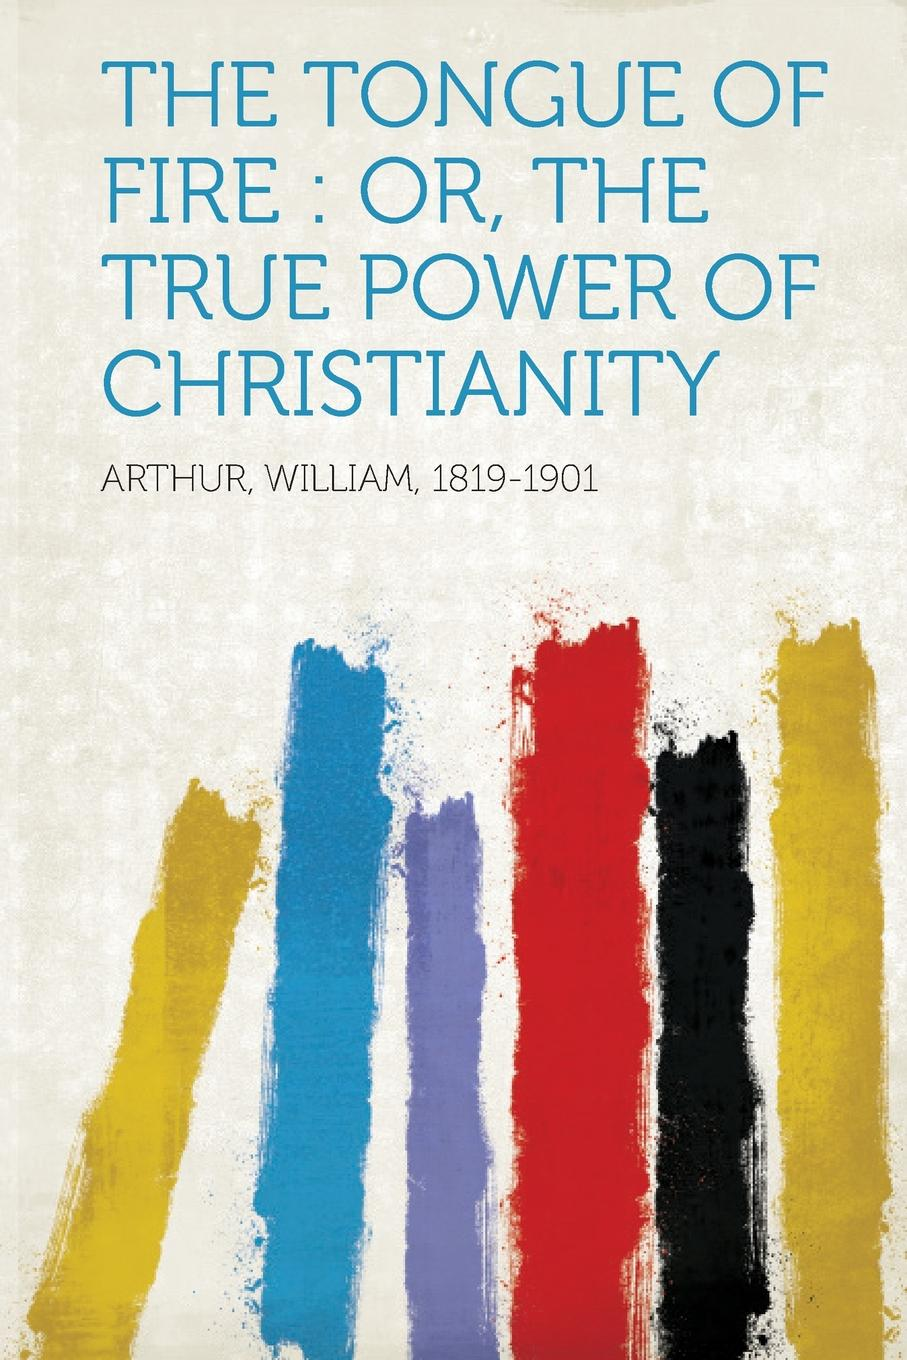 The Tongue of Fire. Or, the True Power of Christianity